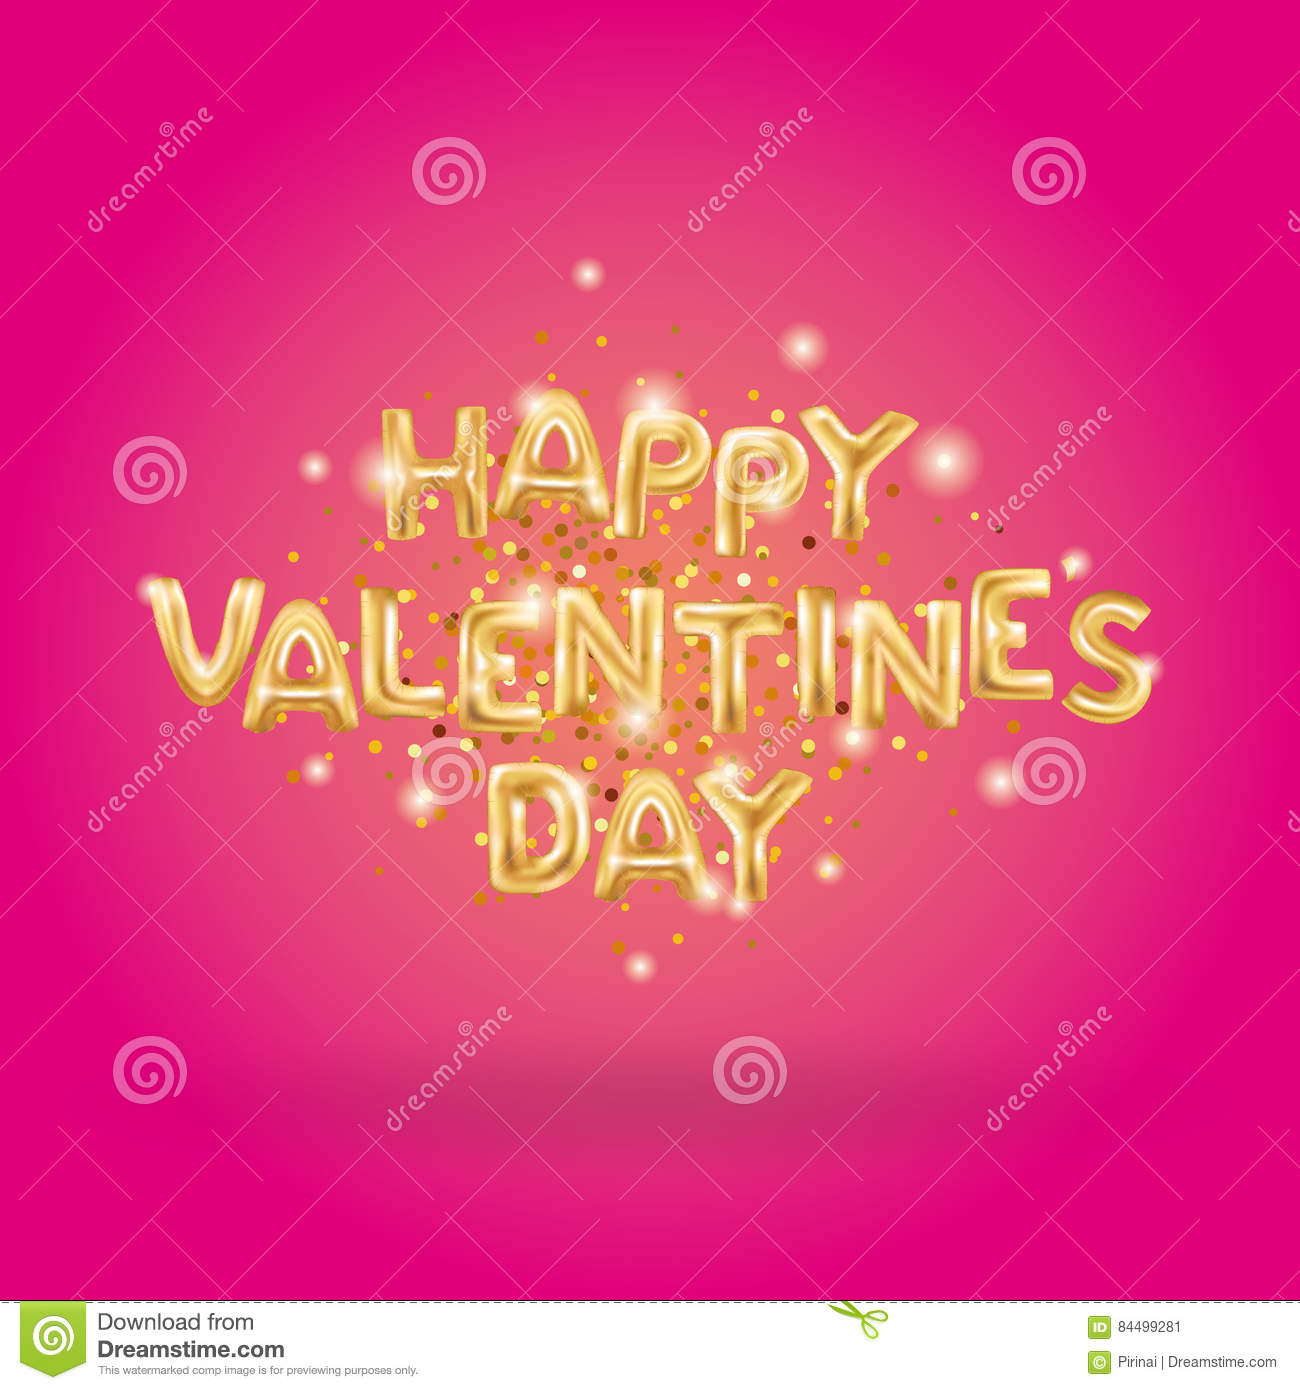 Happy Valentines Day Gold Balloons Stock Vector - Illustration of ...